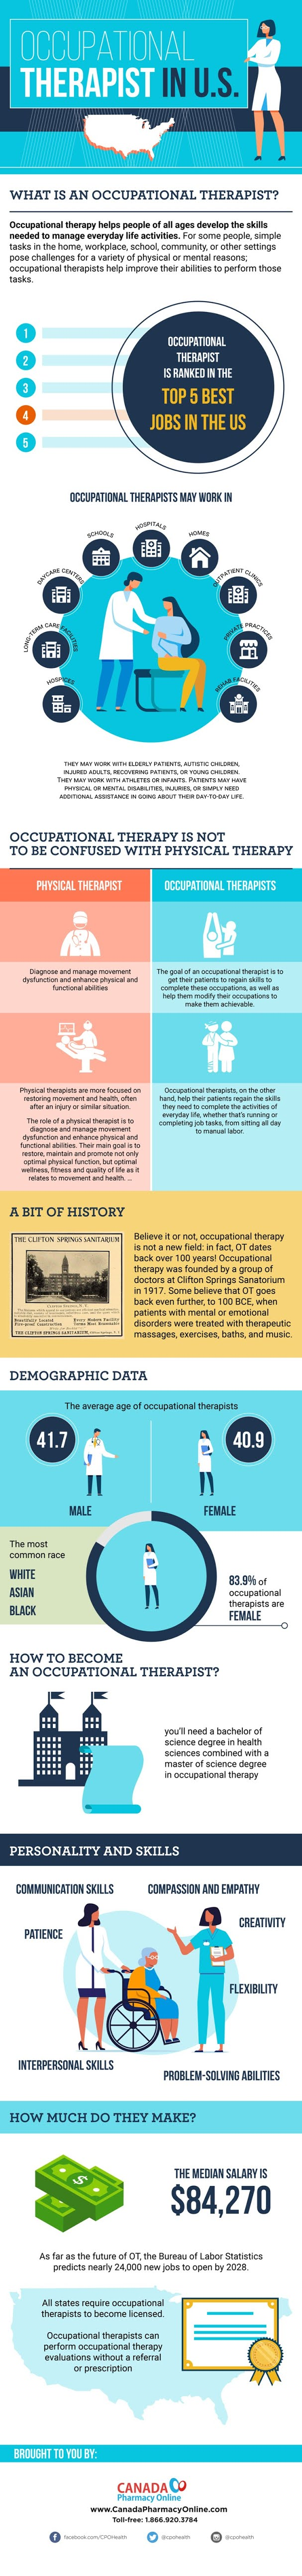 Occupational Therapist Is Ranked in the Top 5 Best Jobs in the US #infographic